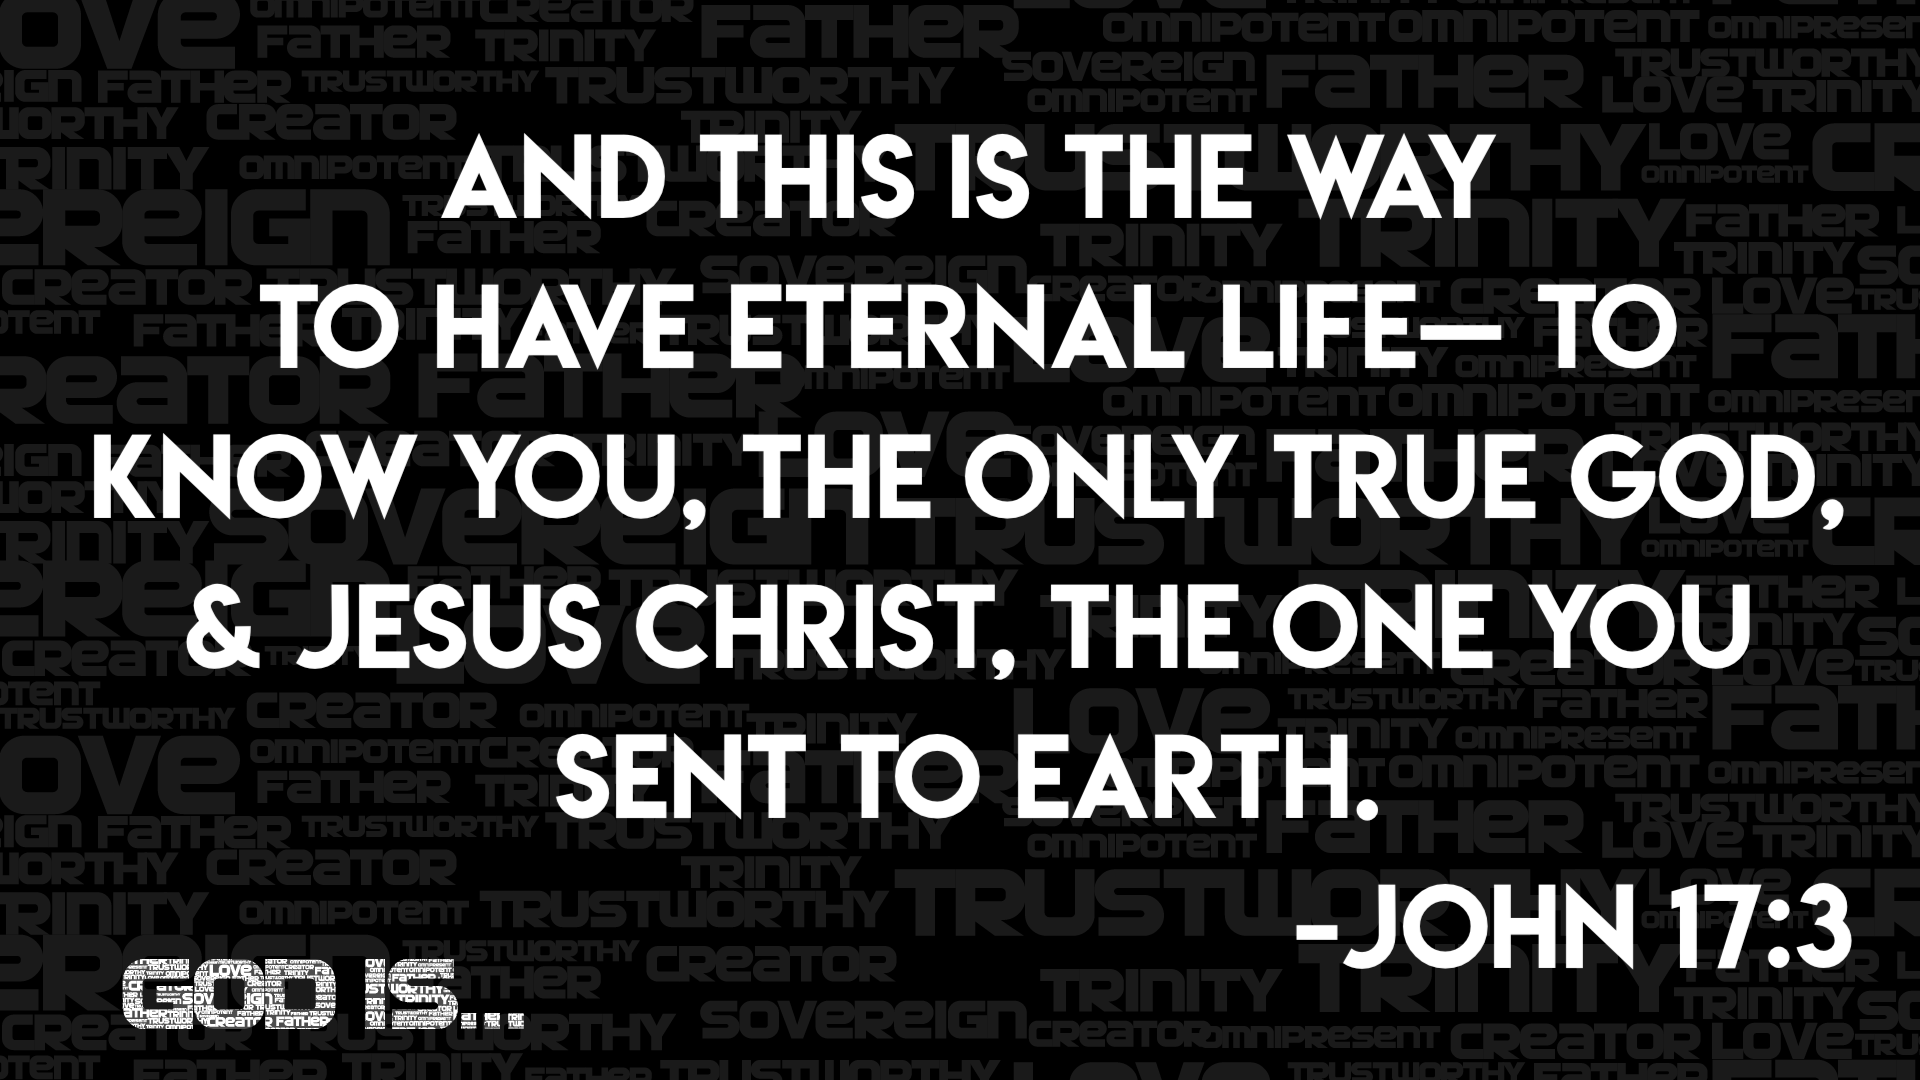 John 17:3- And this is the way to have eternal life-- to know you, the only true God, and Jesus Christ, the one you sent to Earth.